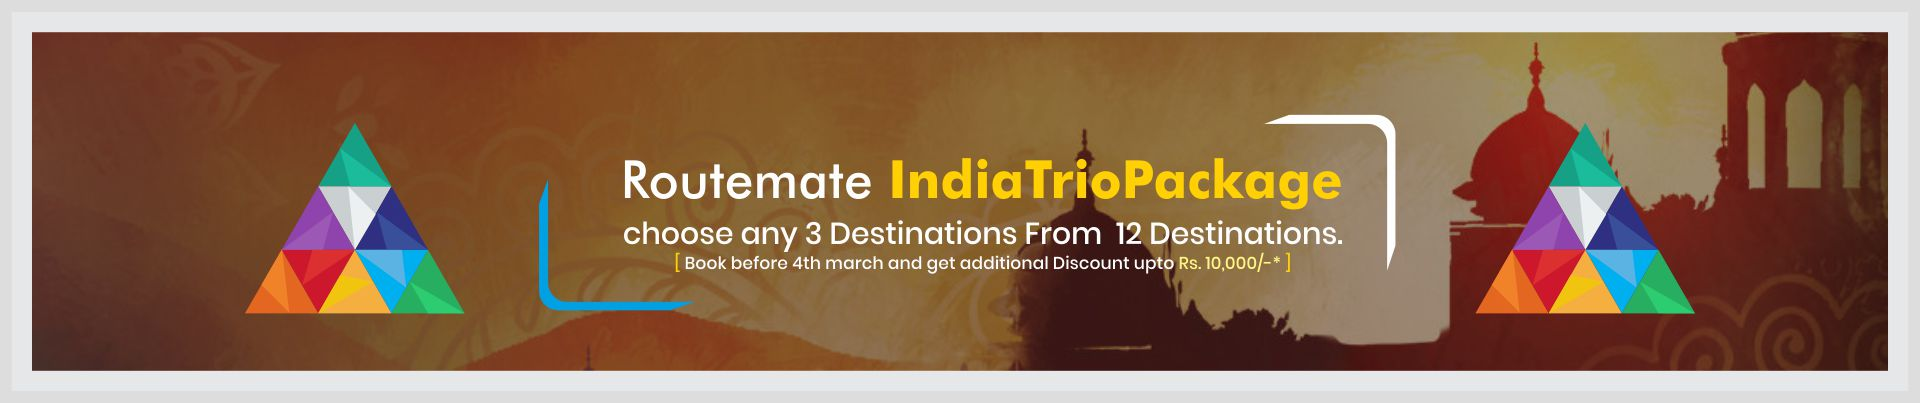 routemate india trio package home page offer